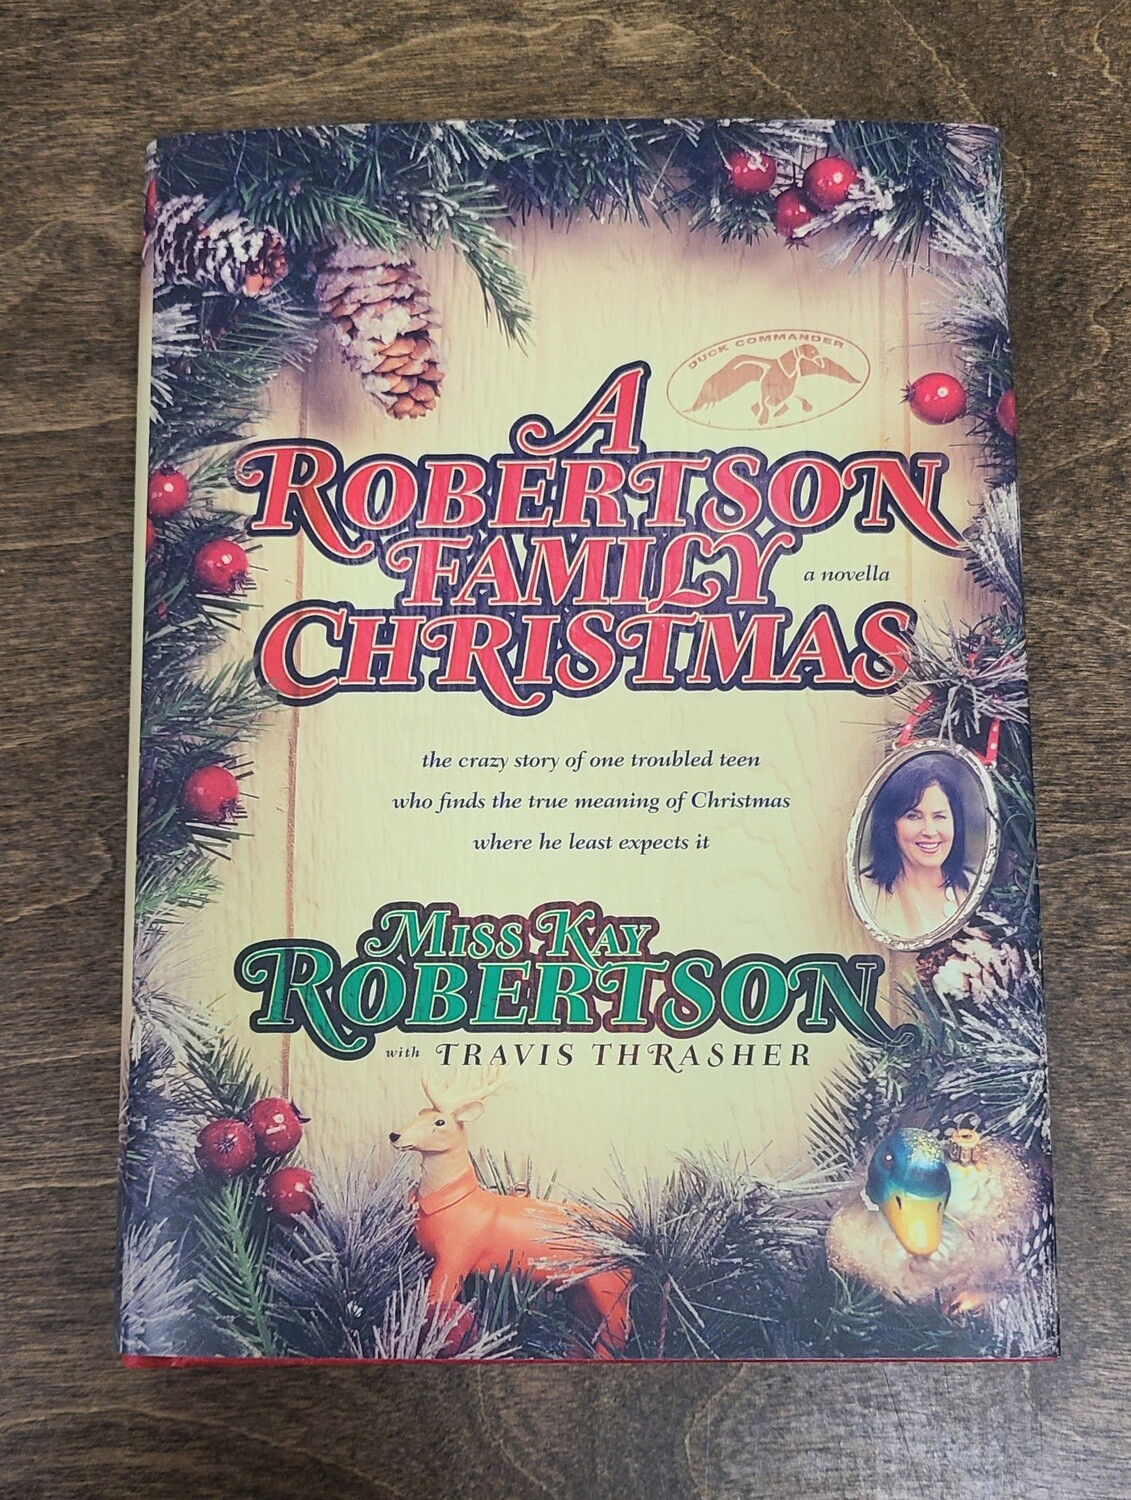 A Robertson Family Christmas by Miss Kay Robertson with Travis Thrasher